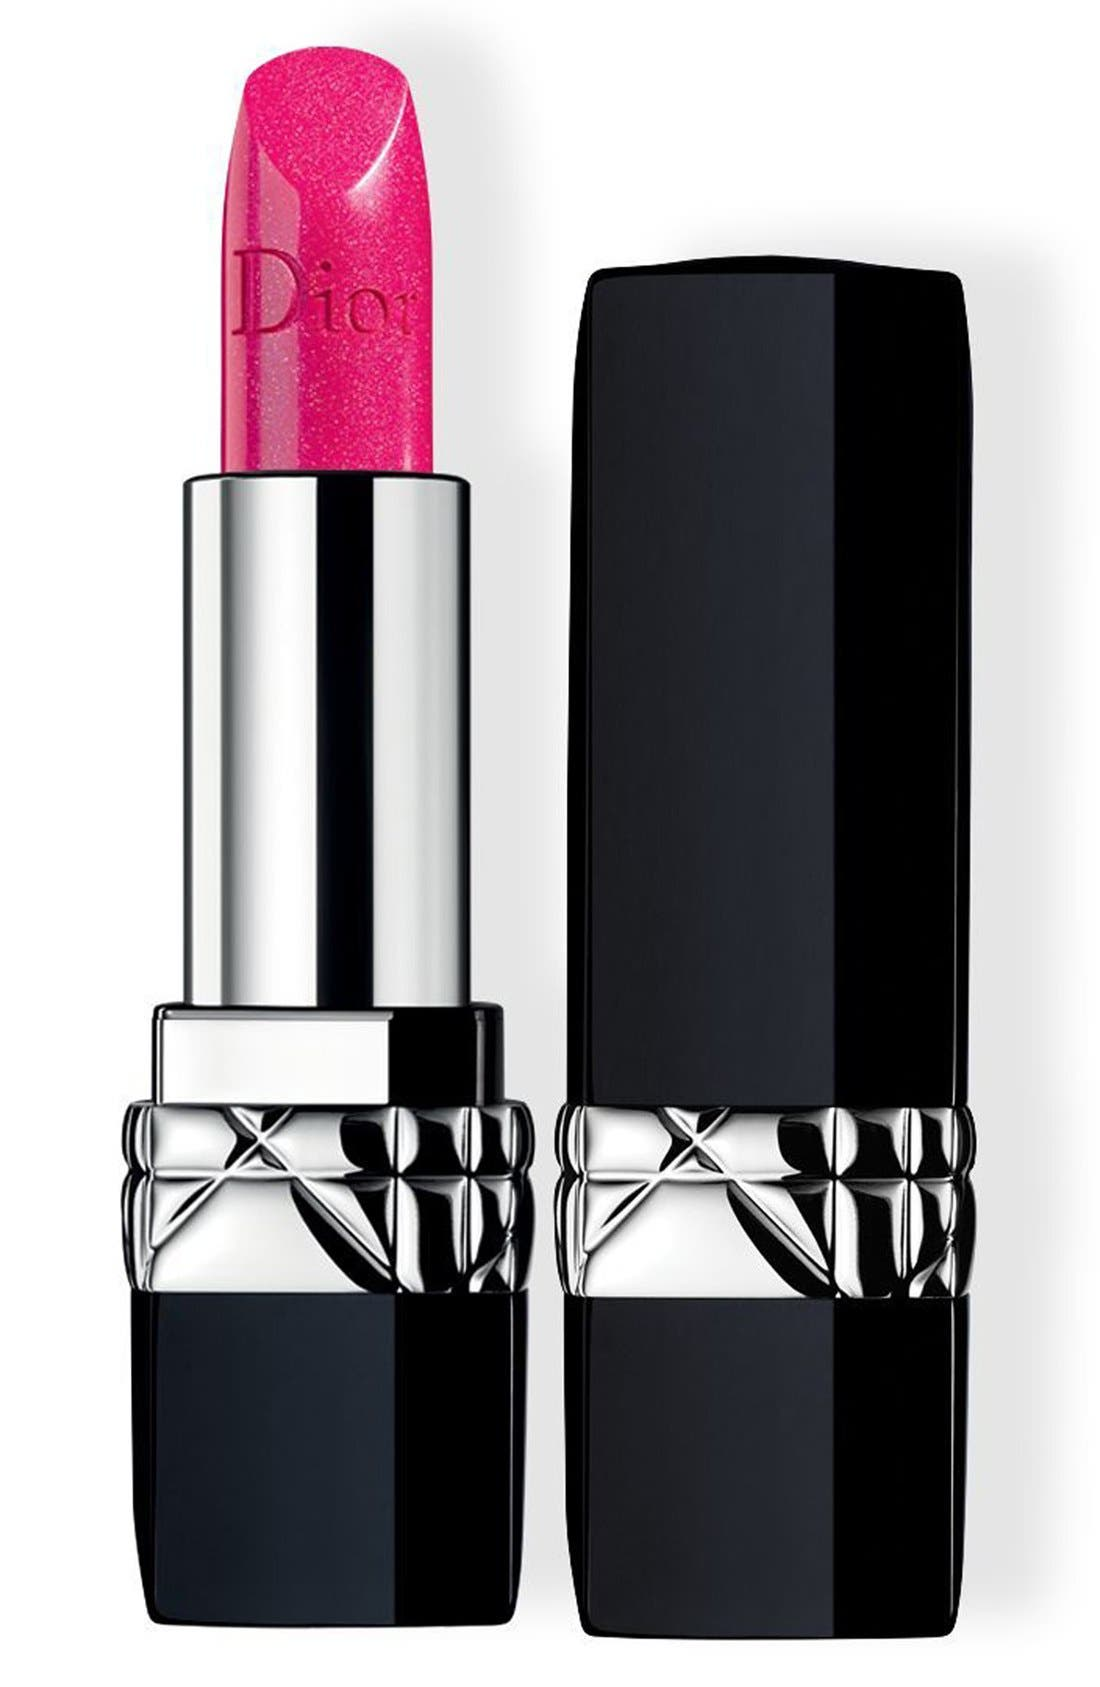 Dior Couture Color Rouge Dior Lipstick - 047 Miss